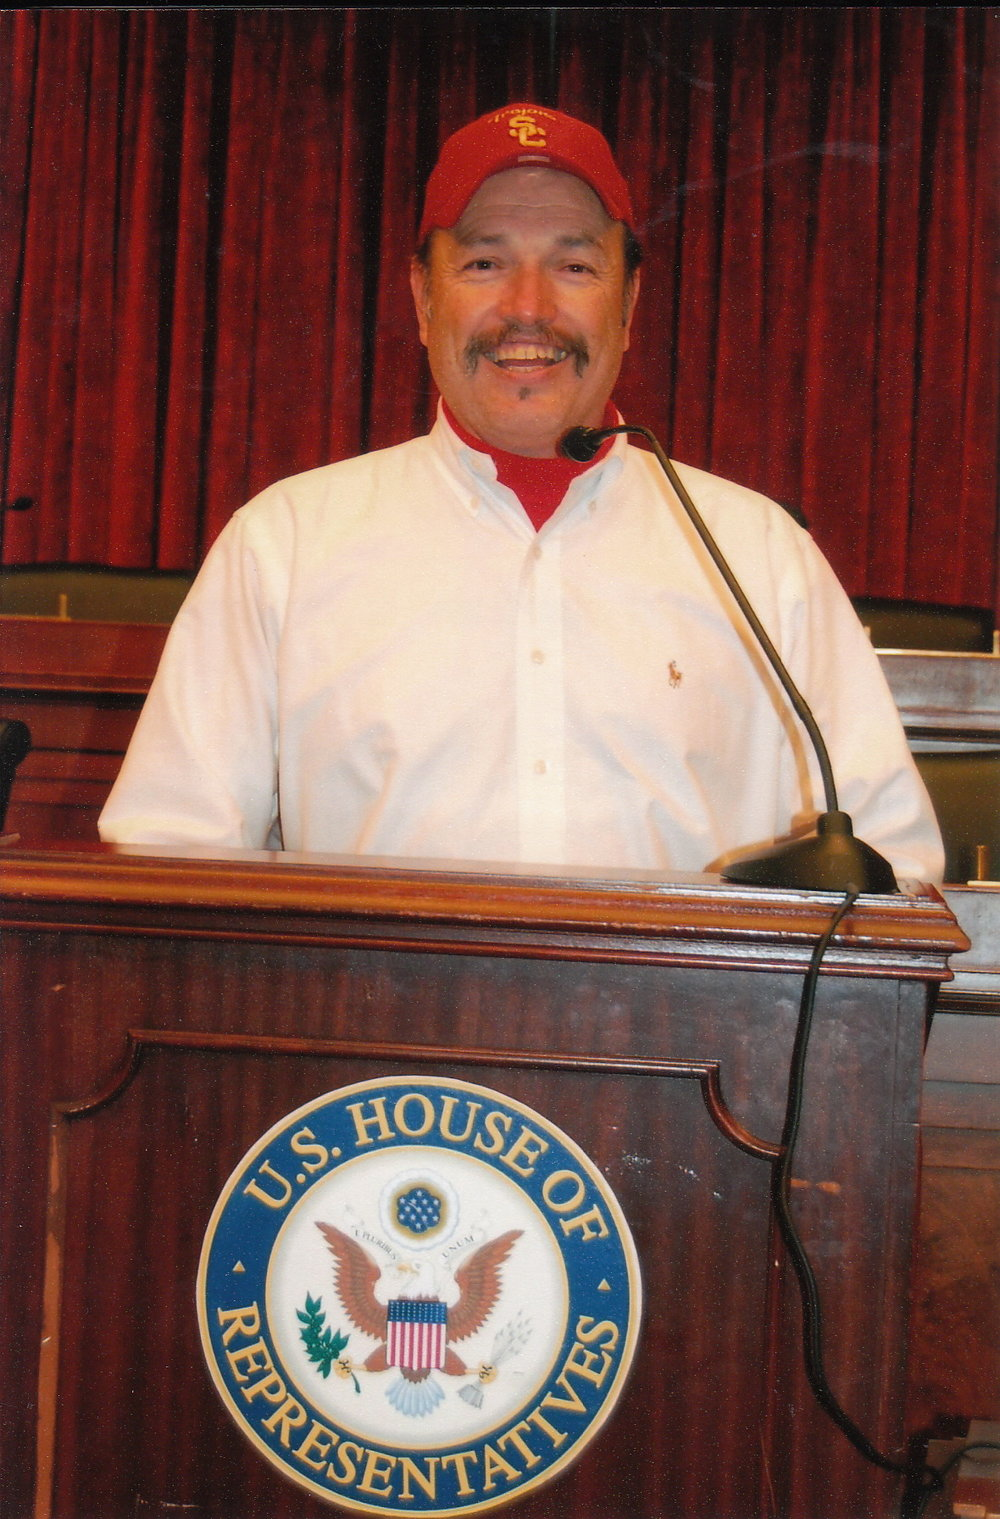 Tony in the U.S. House of Representatives